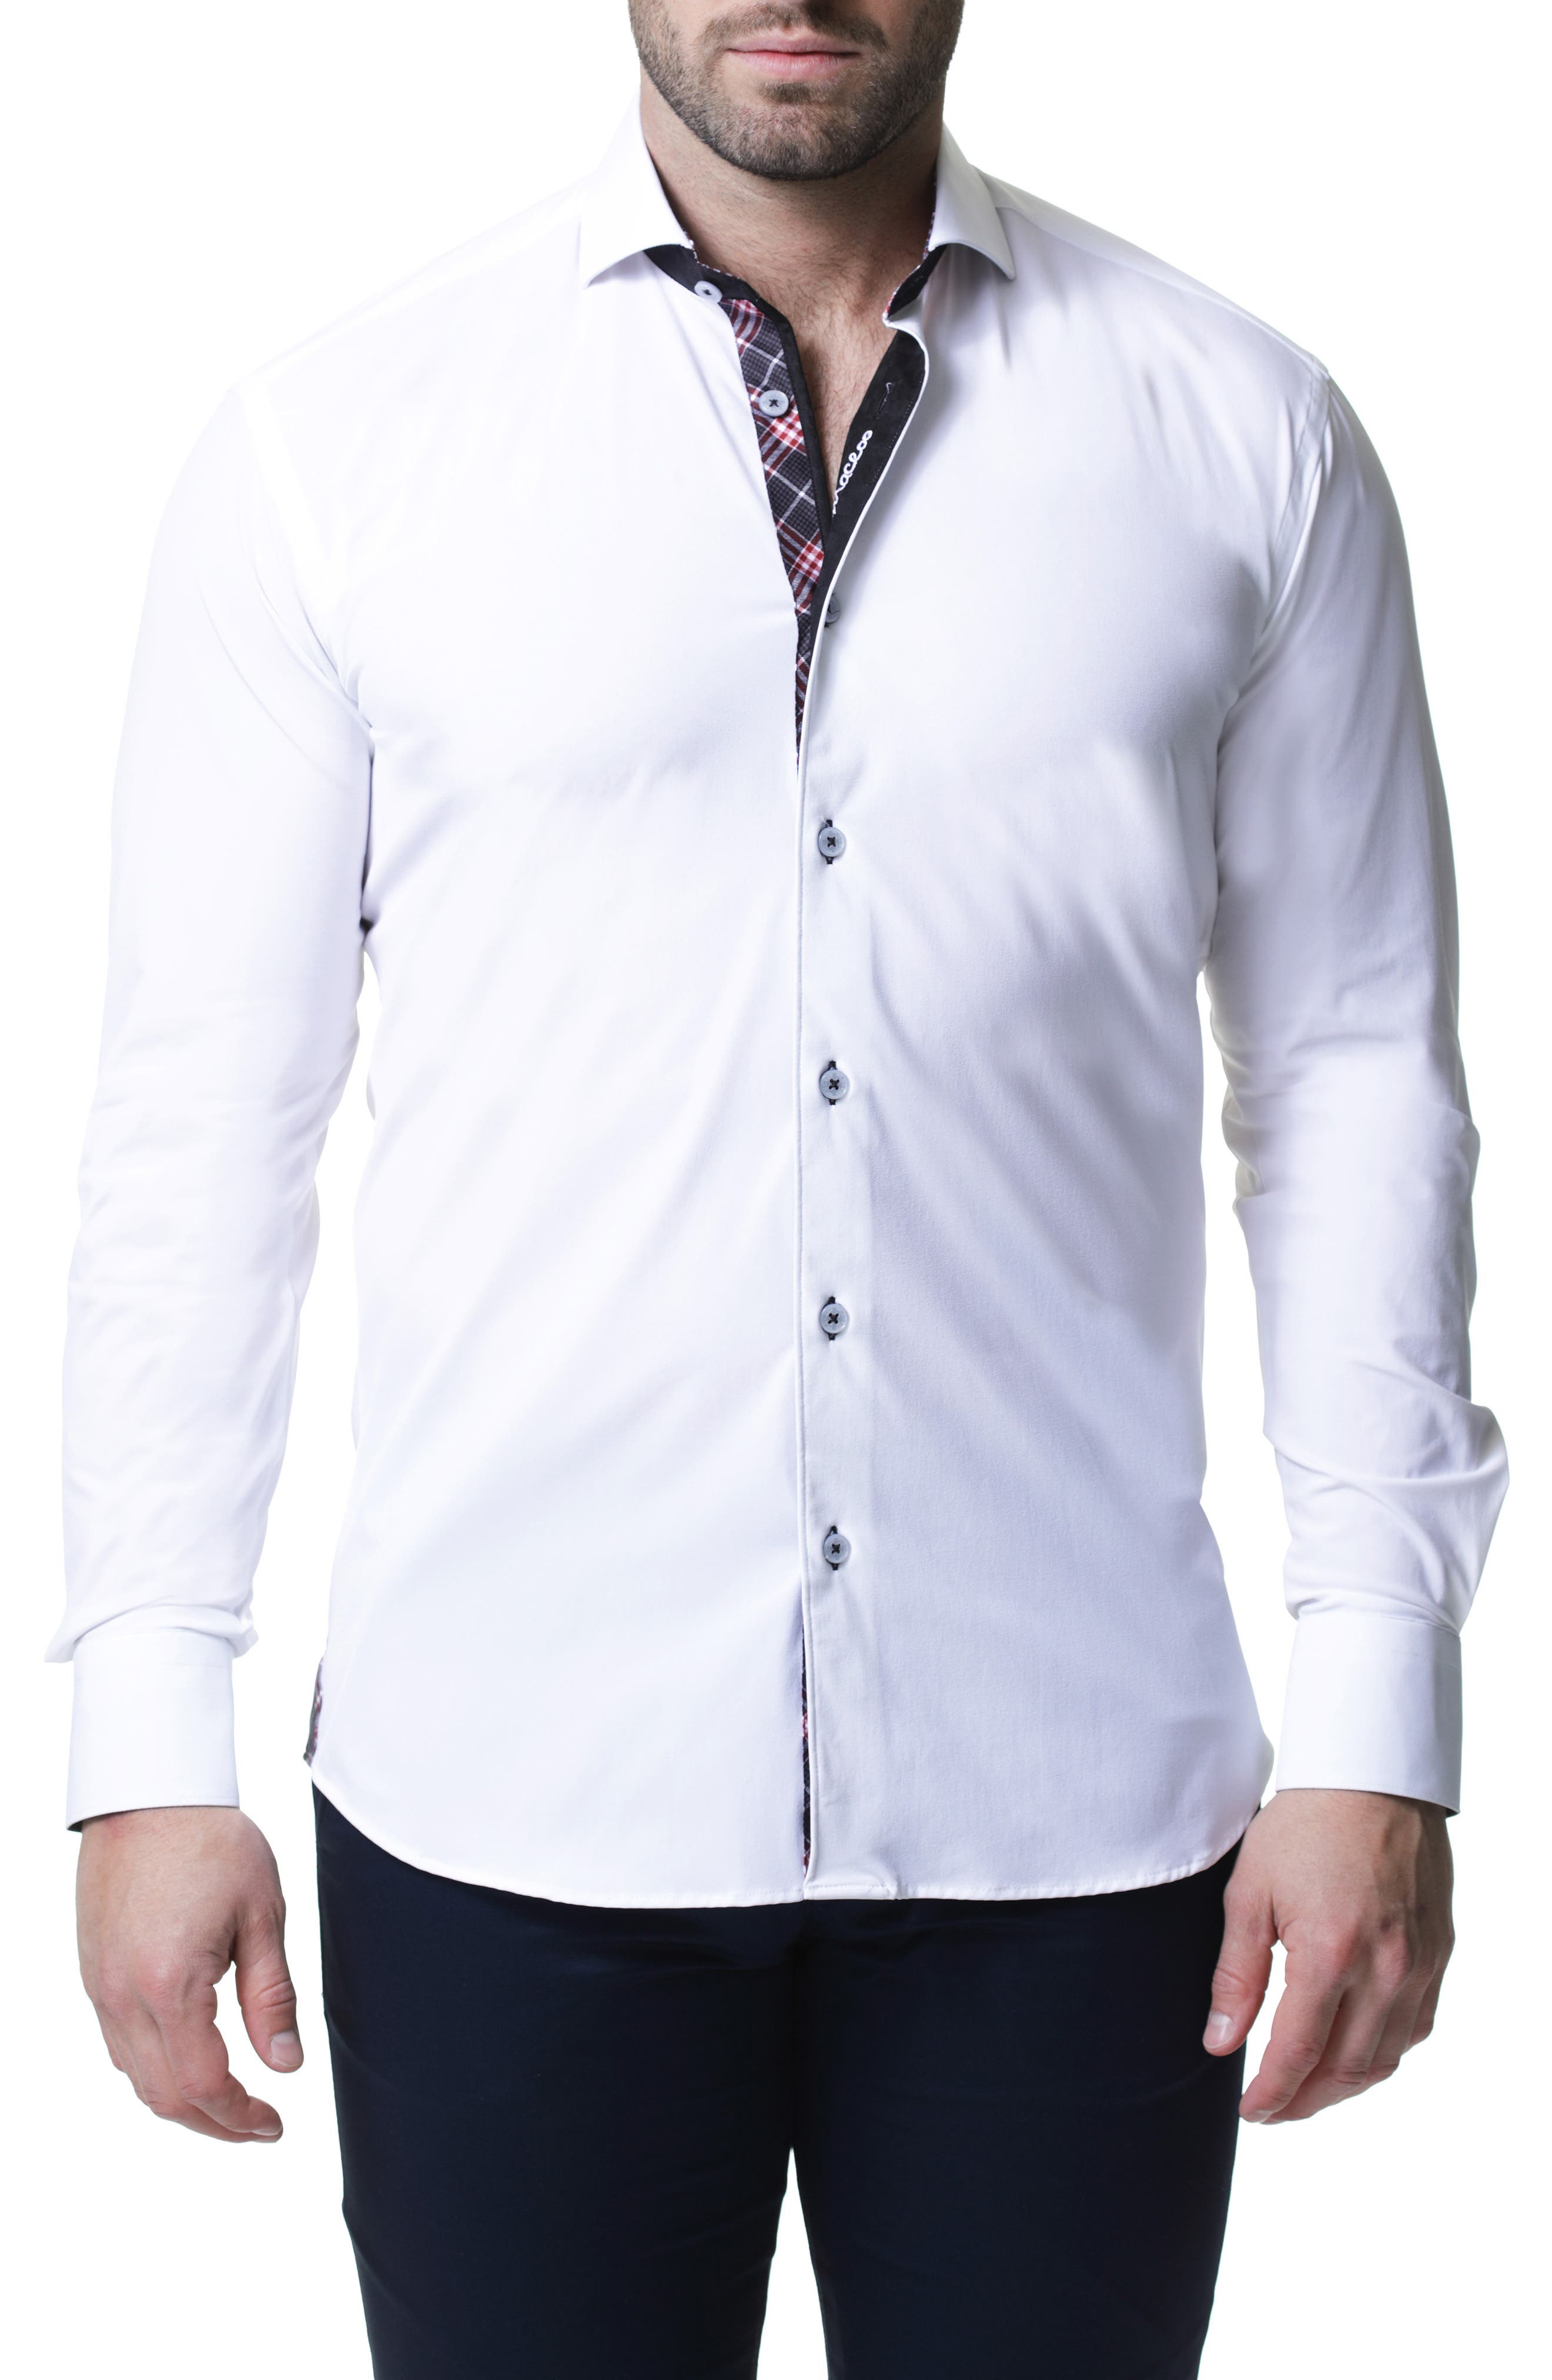 Wall Street 4-Way Stretch White Check Performance Sport Shirt,                             Main thumbnail 1, color,                             WHITE